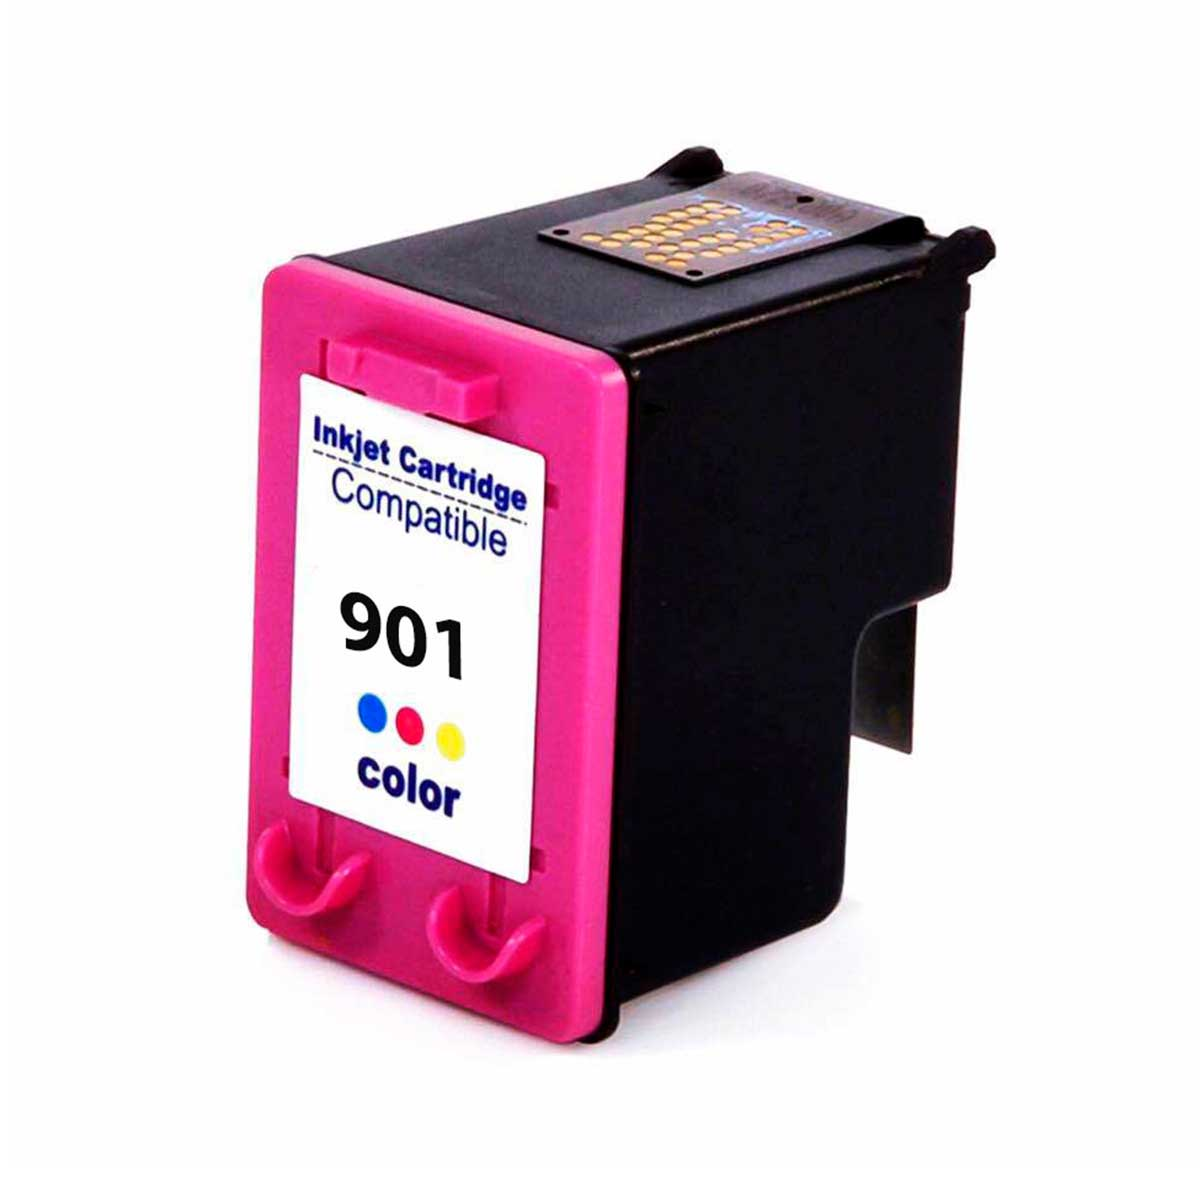 Compativel: Cartucho de tinta nacional para HP 901XL CC656A 14ML Colorido - Officejet J4540 J4550 J4580 J4660